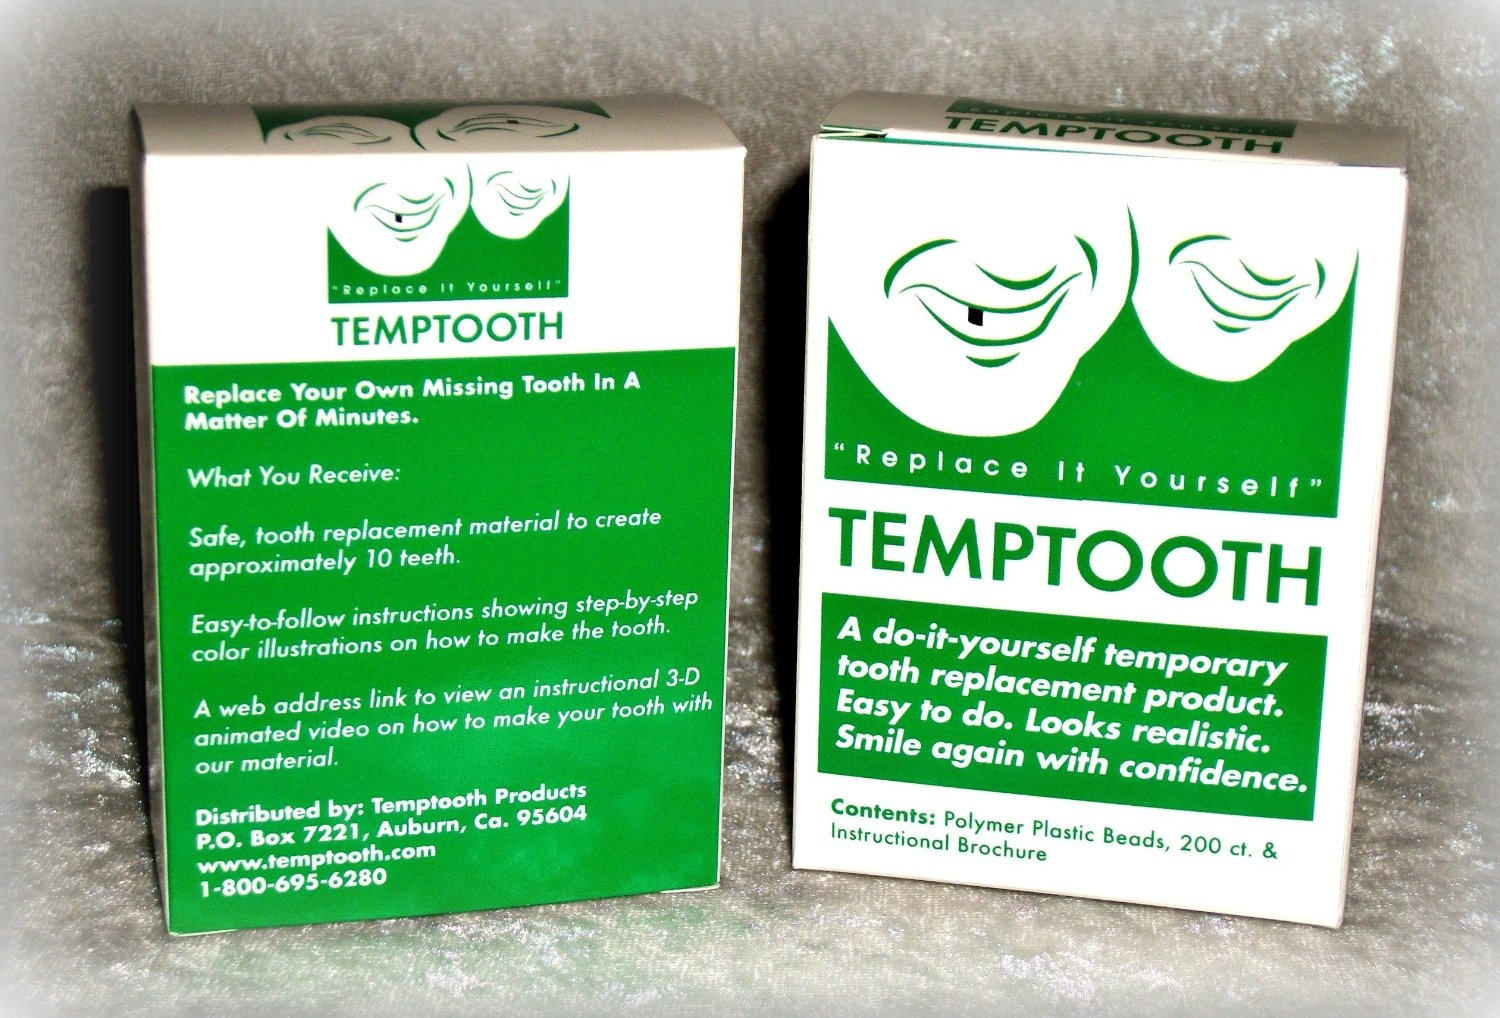 Temptooth do it yourself tooth replacement product by temptooth temptooth do it yourself tooth replacement product by temptooth shop online for health in the united states solutioingenieria Images